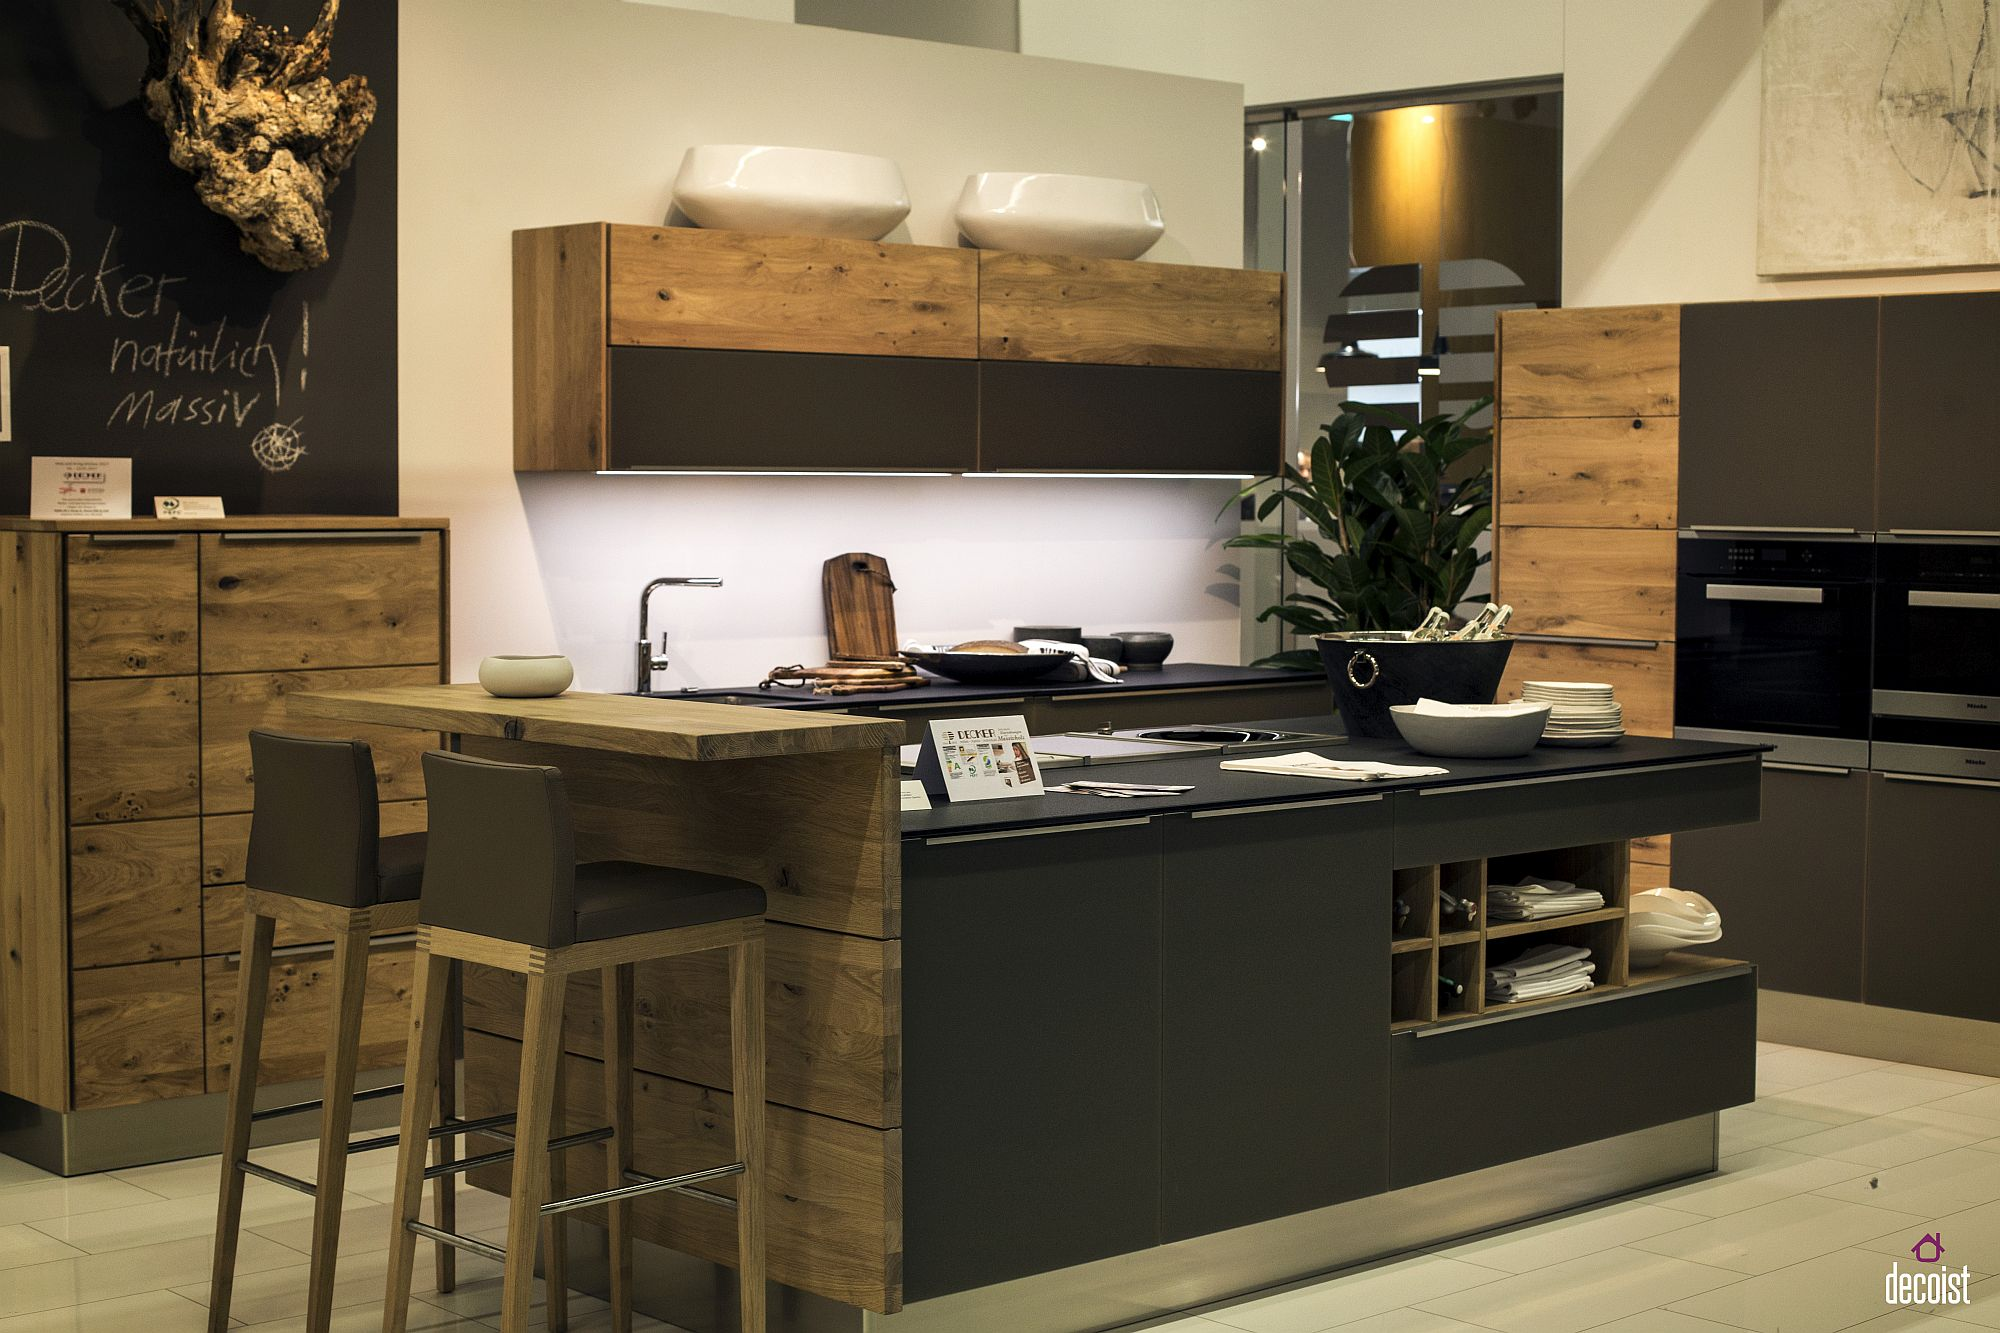 Wood combined with polished finishes to create an inimitable kitchen